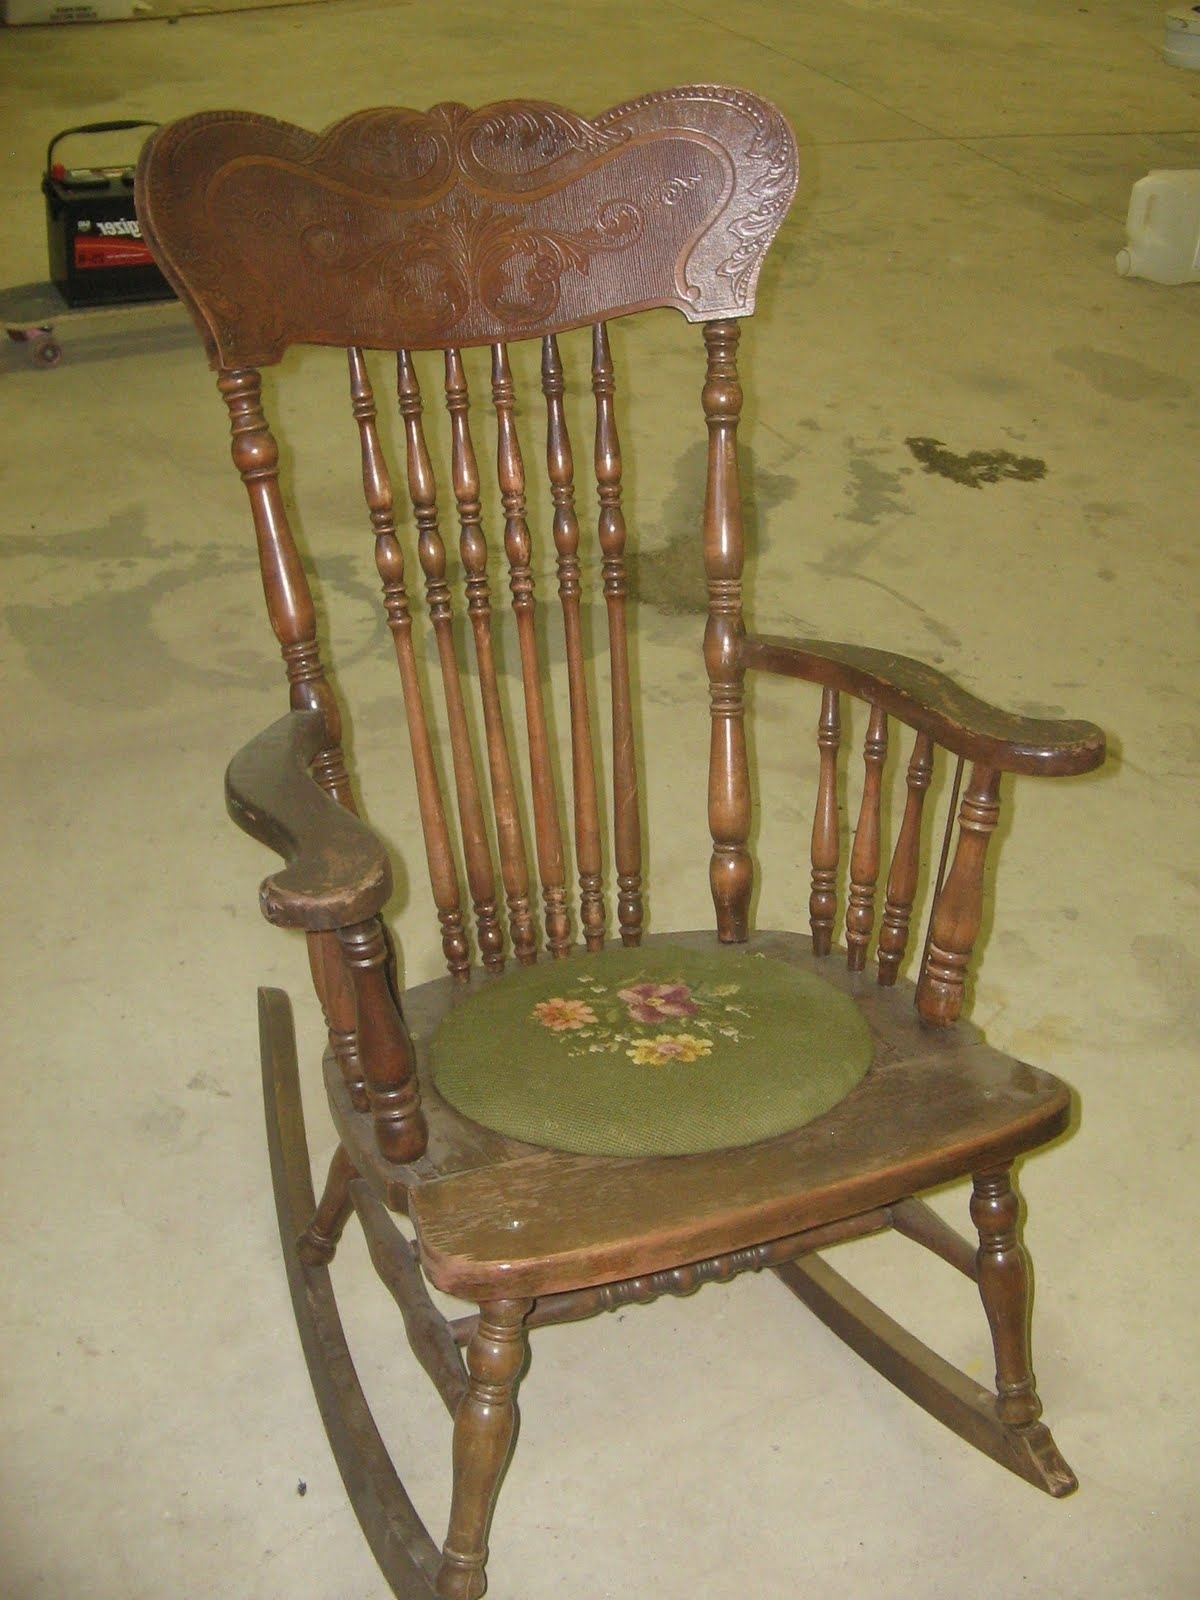 Ideas Antique Rocking Chairs — Weekly Geek Design : Antique Rocking In Current Antique Rocking Chairs (View 12 of 20)